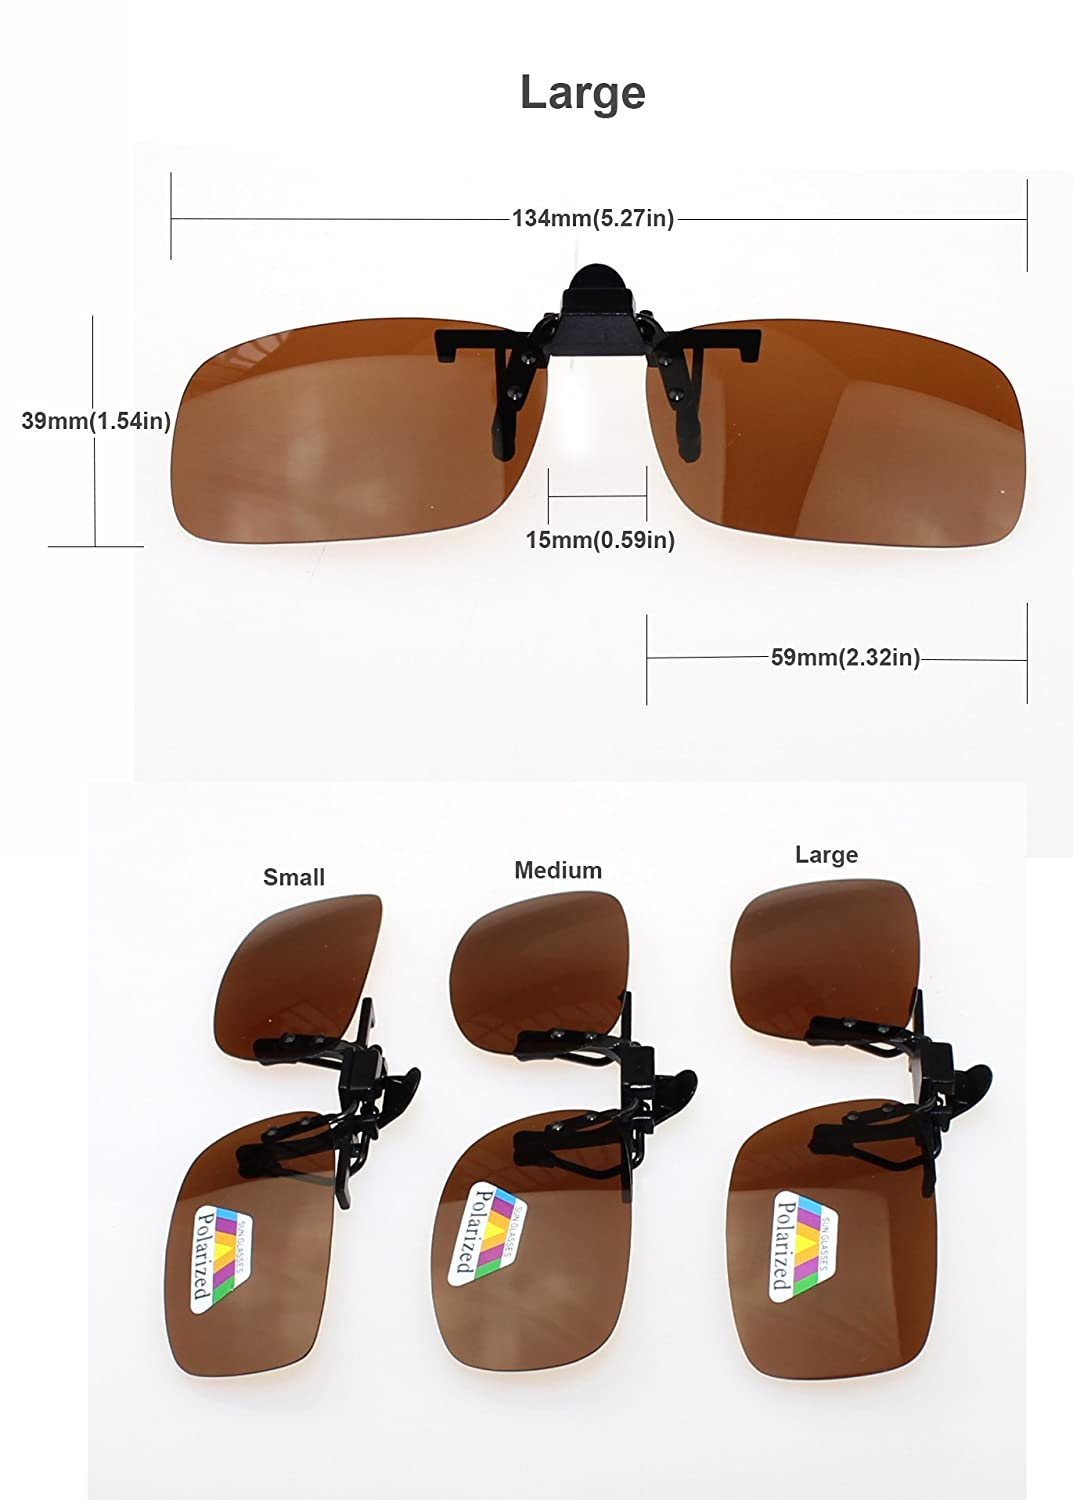 13b80a7184 Amazon.com  Jaky Lightweight Polarized Clip-on Sunglass With Compact Flip  Up Mount For Myopia Glasses Anti-Reflective UV400 UV Protection - Fits over  ...